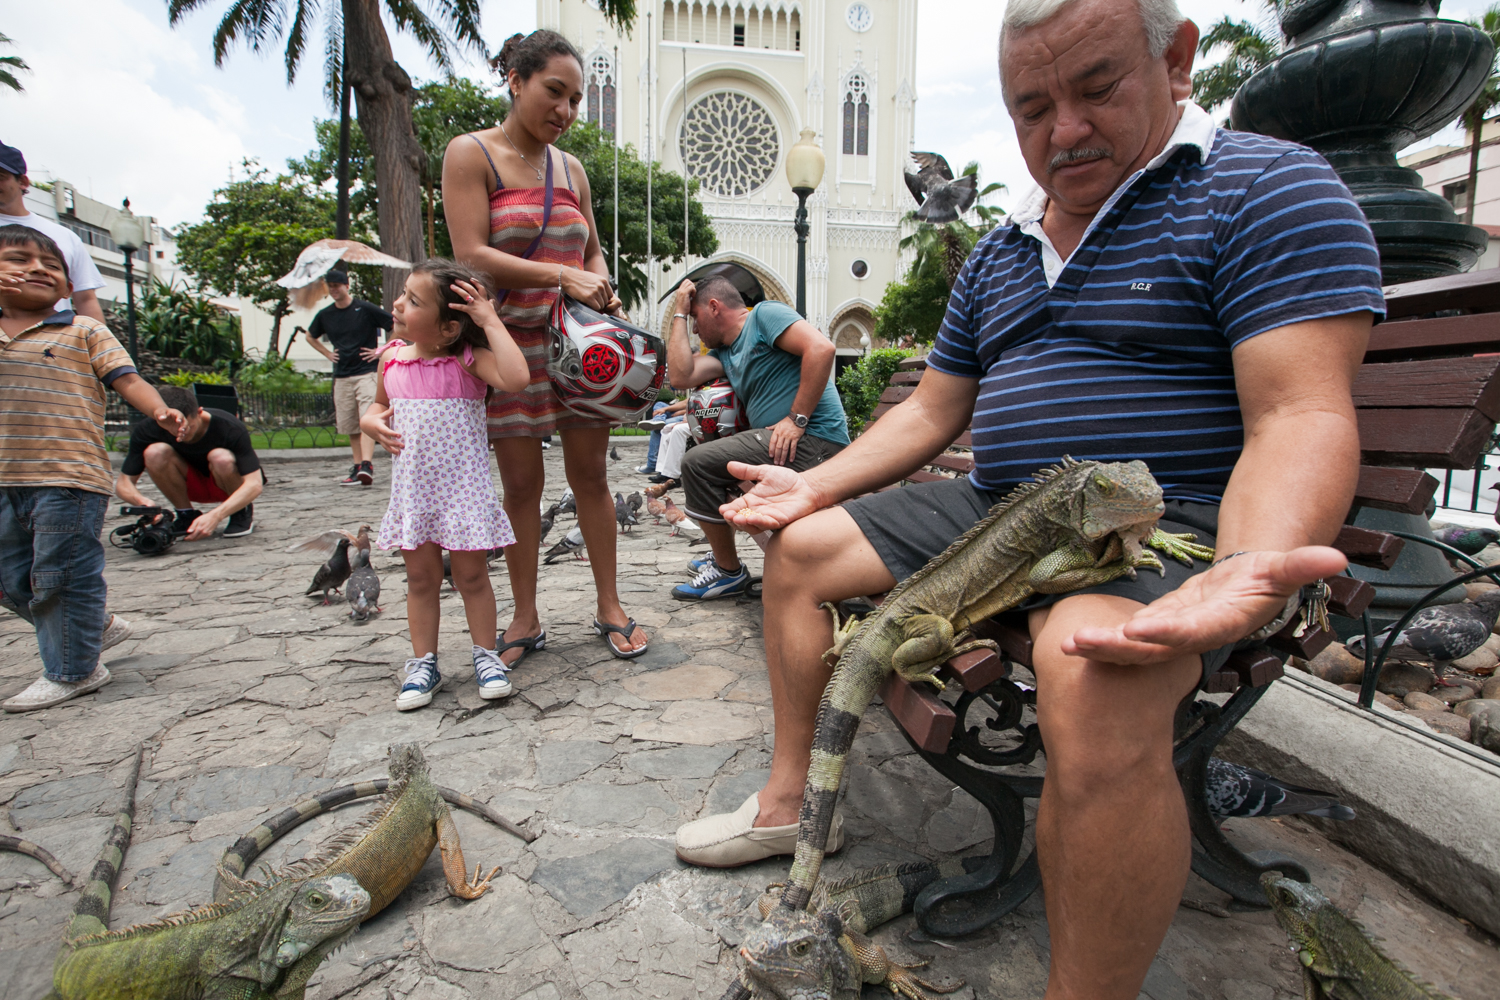 An iguana park is located in Guayaquil's city center across from the main cathedral. People gather to feed and play with the iguanas.